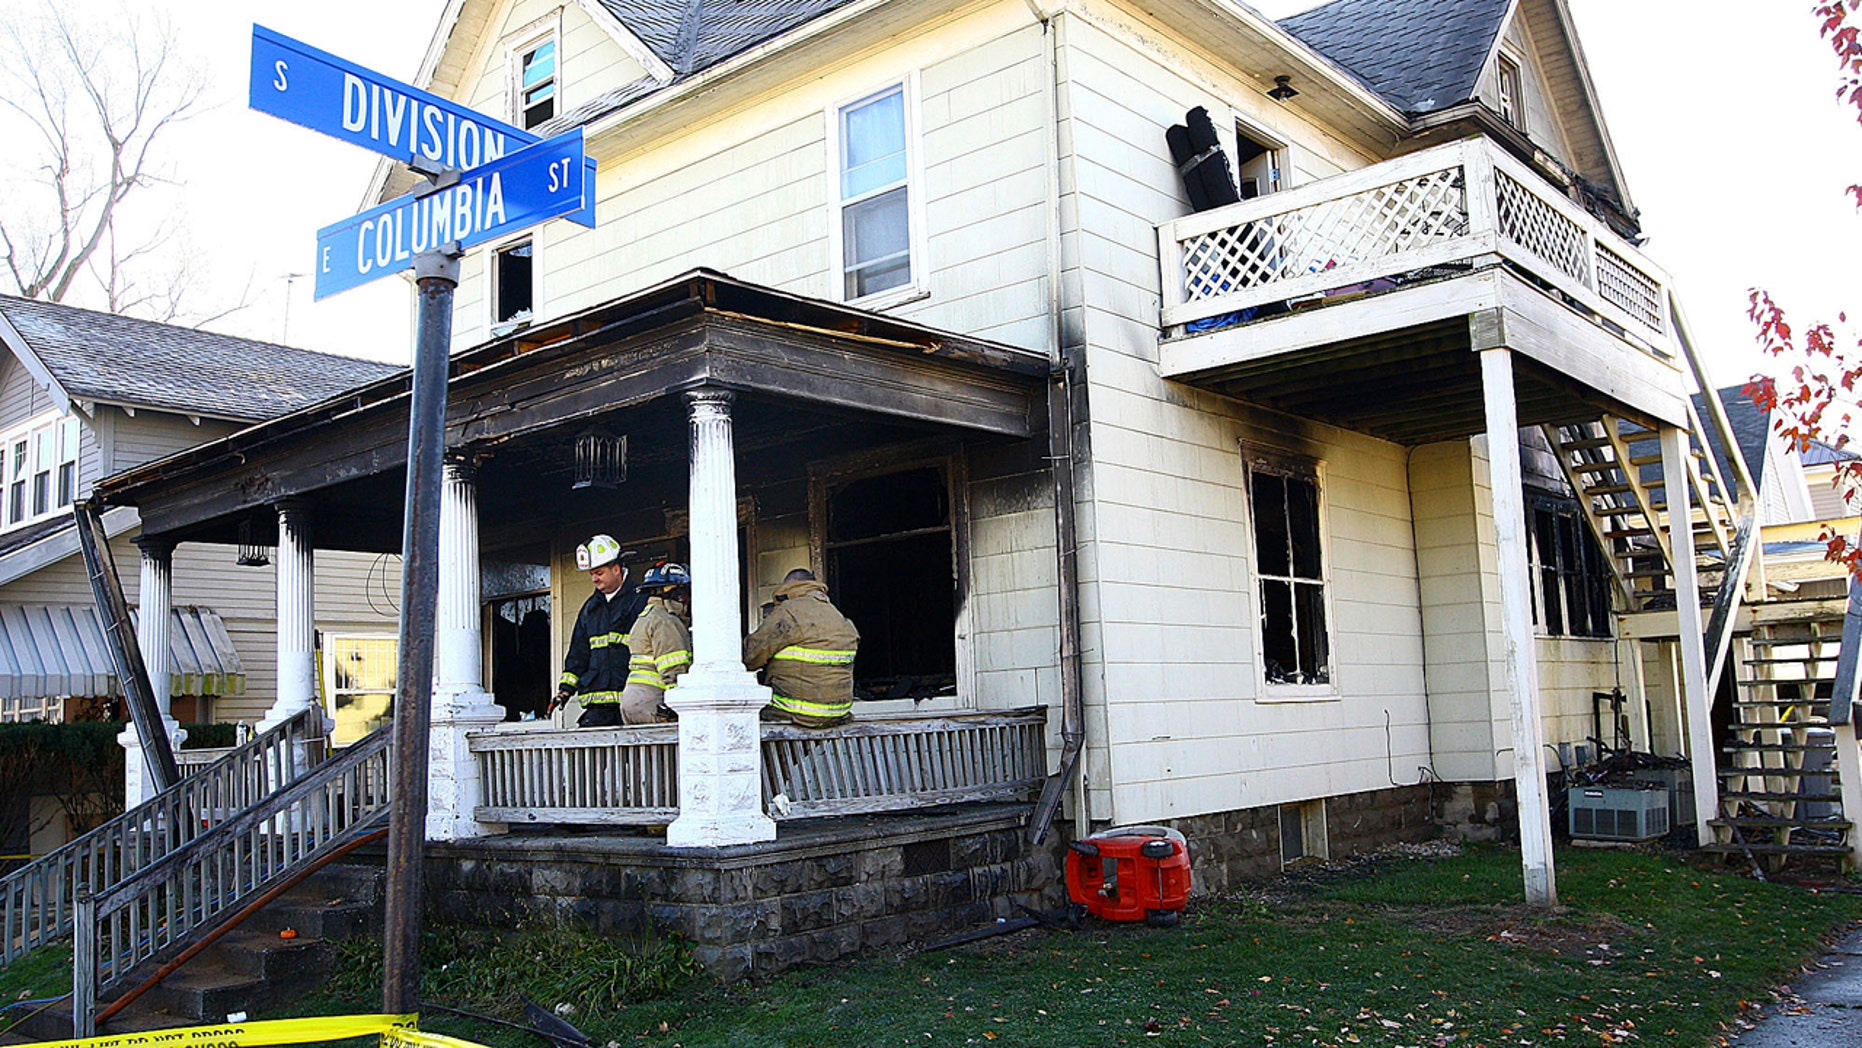 Firefighters work at a house where four children died in a house fire in the 100 block of East Columbia Street in Flora, Ind., on Monday morning, Nov. 21, 2016.